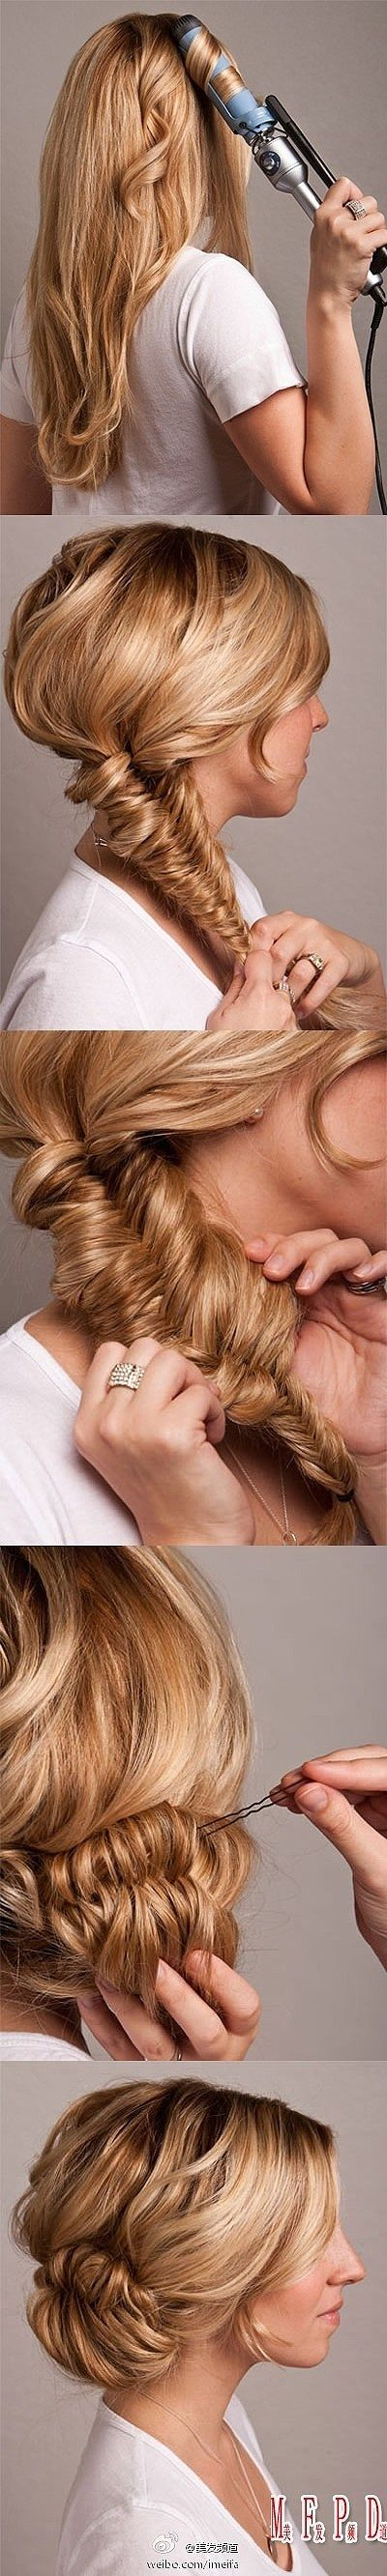 20 Clever And Interesting Tutorials For Your Hairstyle